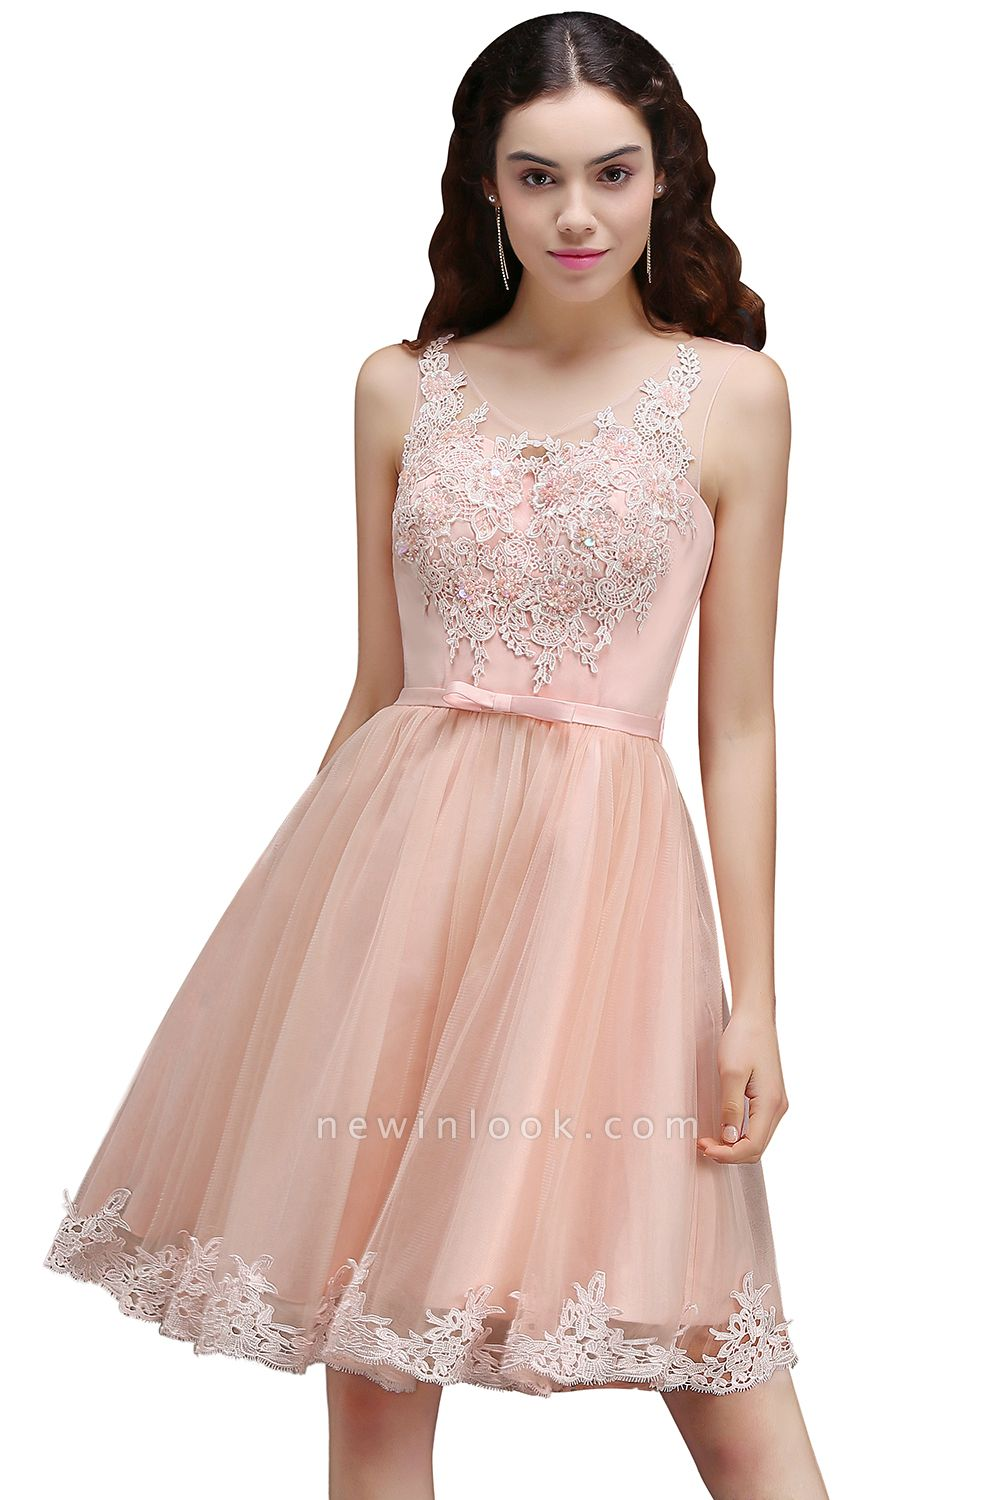 ANIYAH | Quinceanera Short Cute 15 Dama Dress With Lace